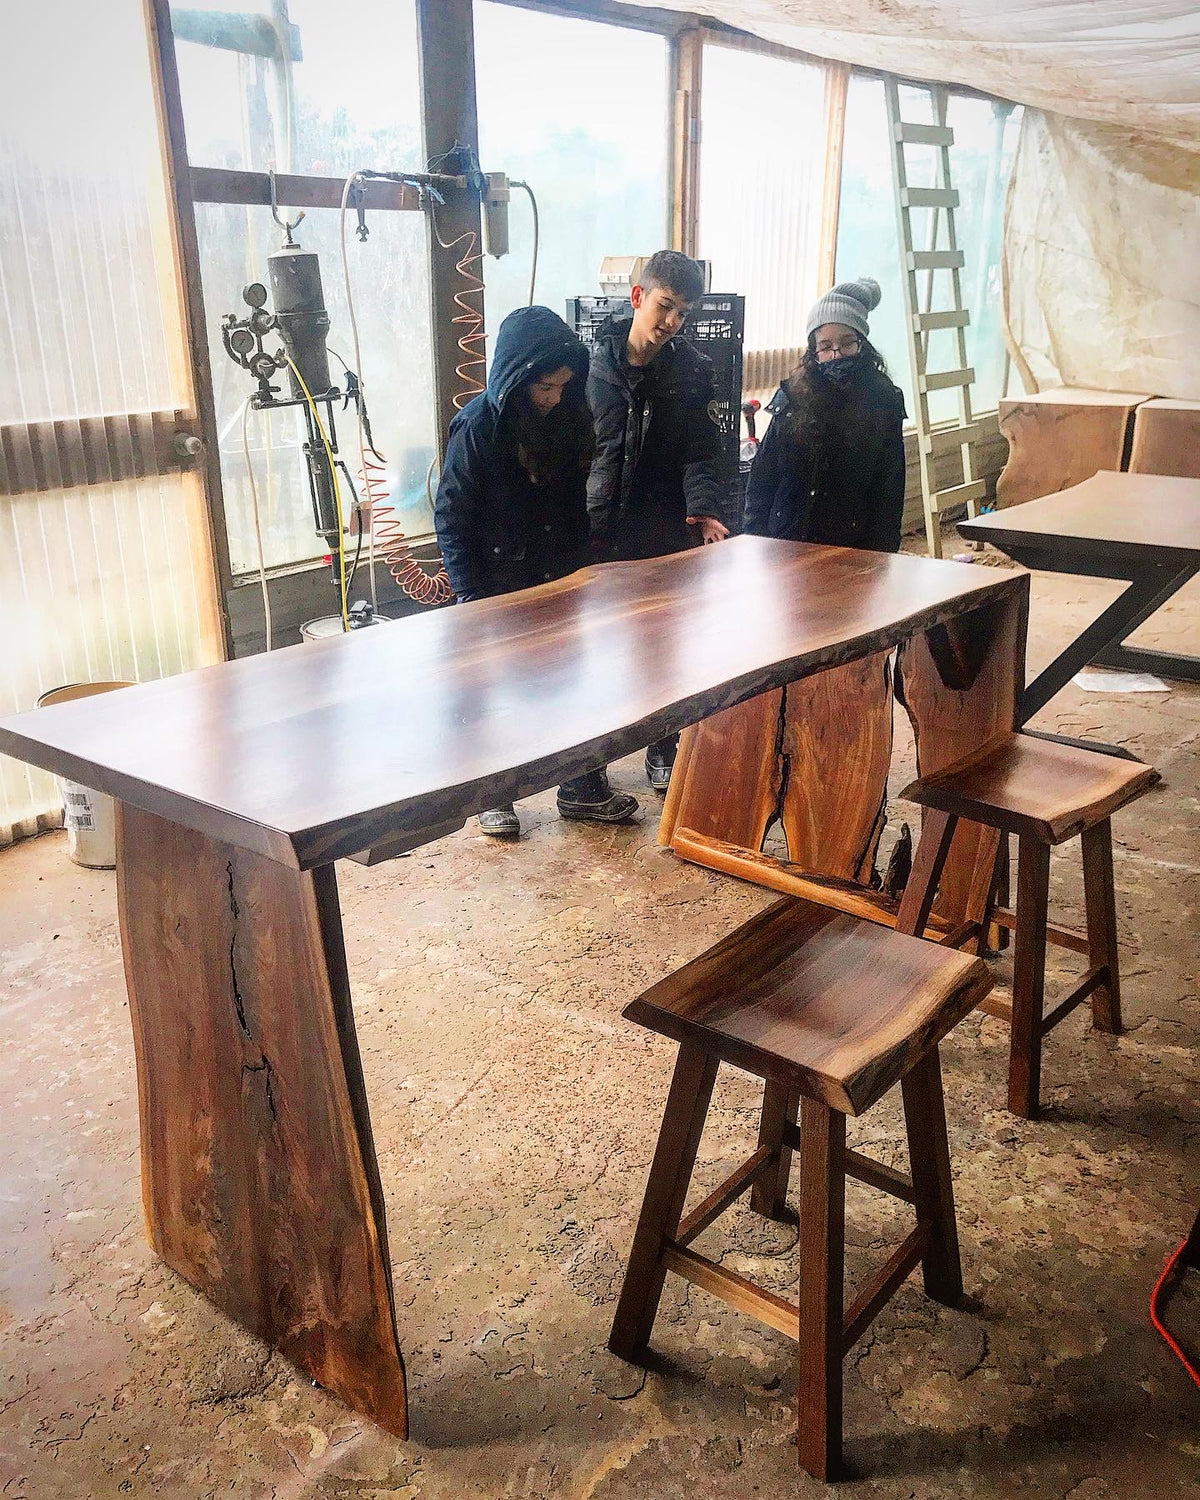 Bar - Breakfast Bar - Kitchen Table - High Table with Stools